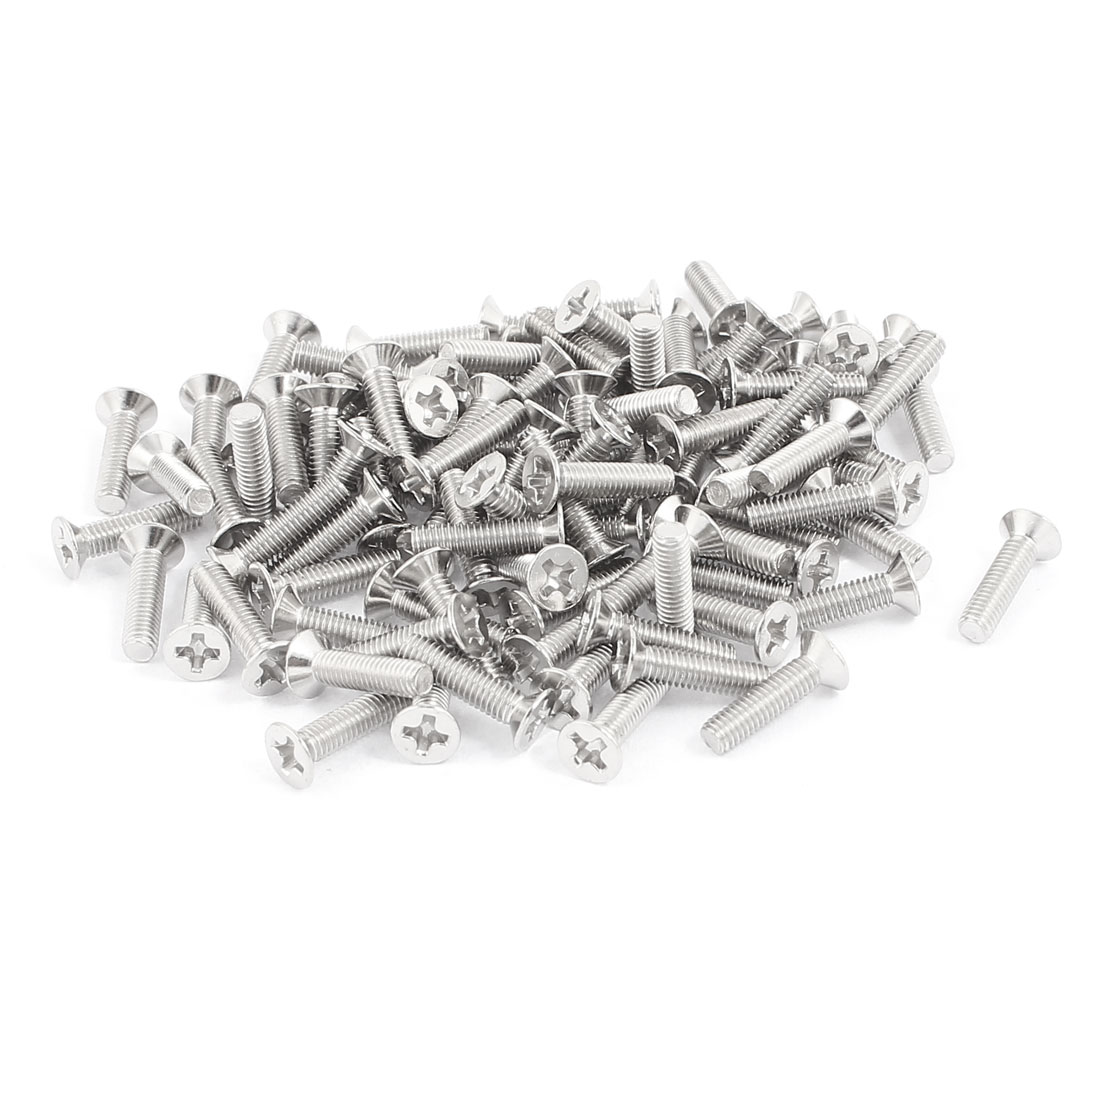 100 Pcs M3x12mm Stainless Steel Countersunk Flat Head Phillips Machine Screws Bolts